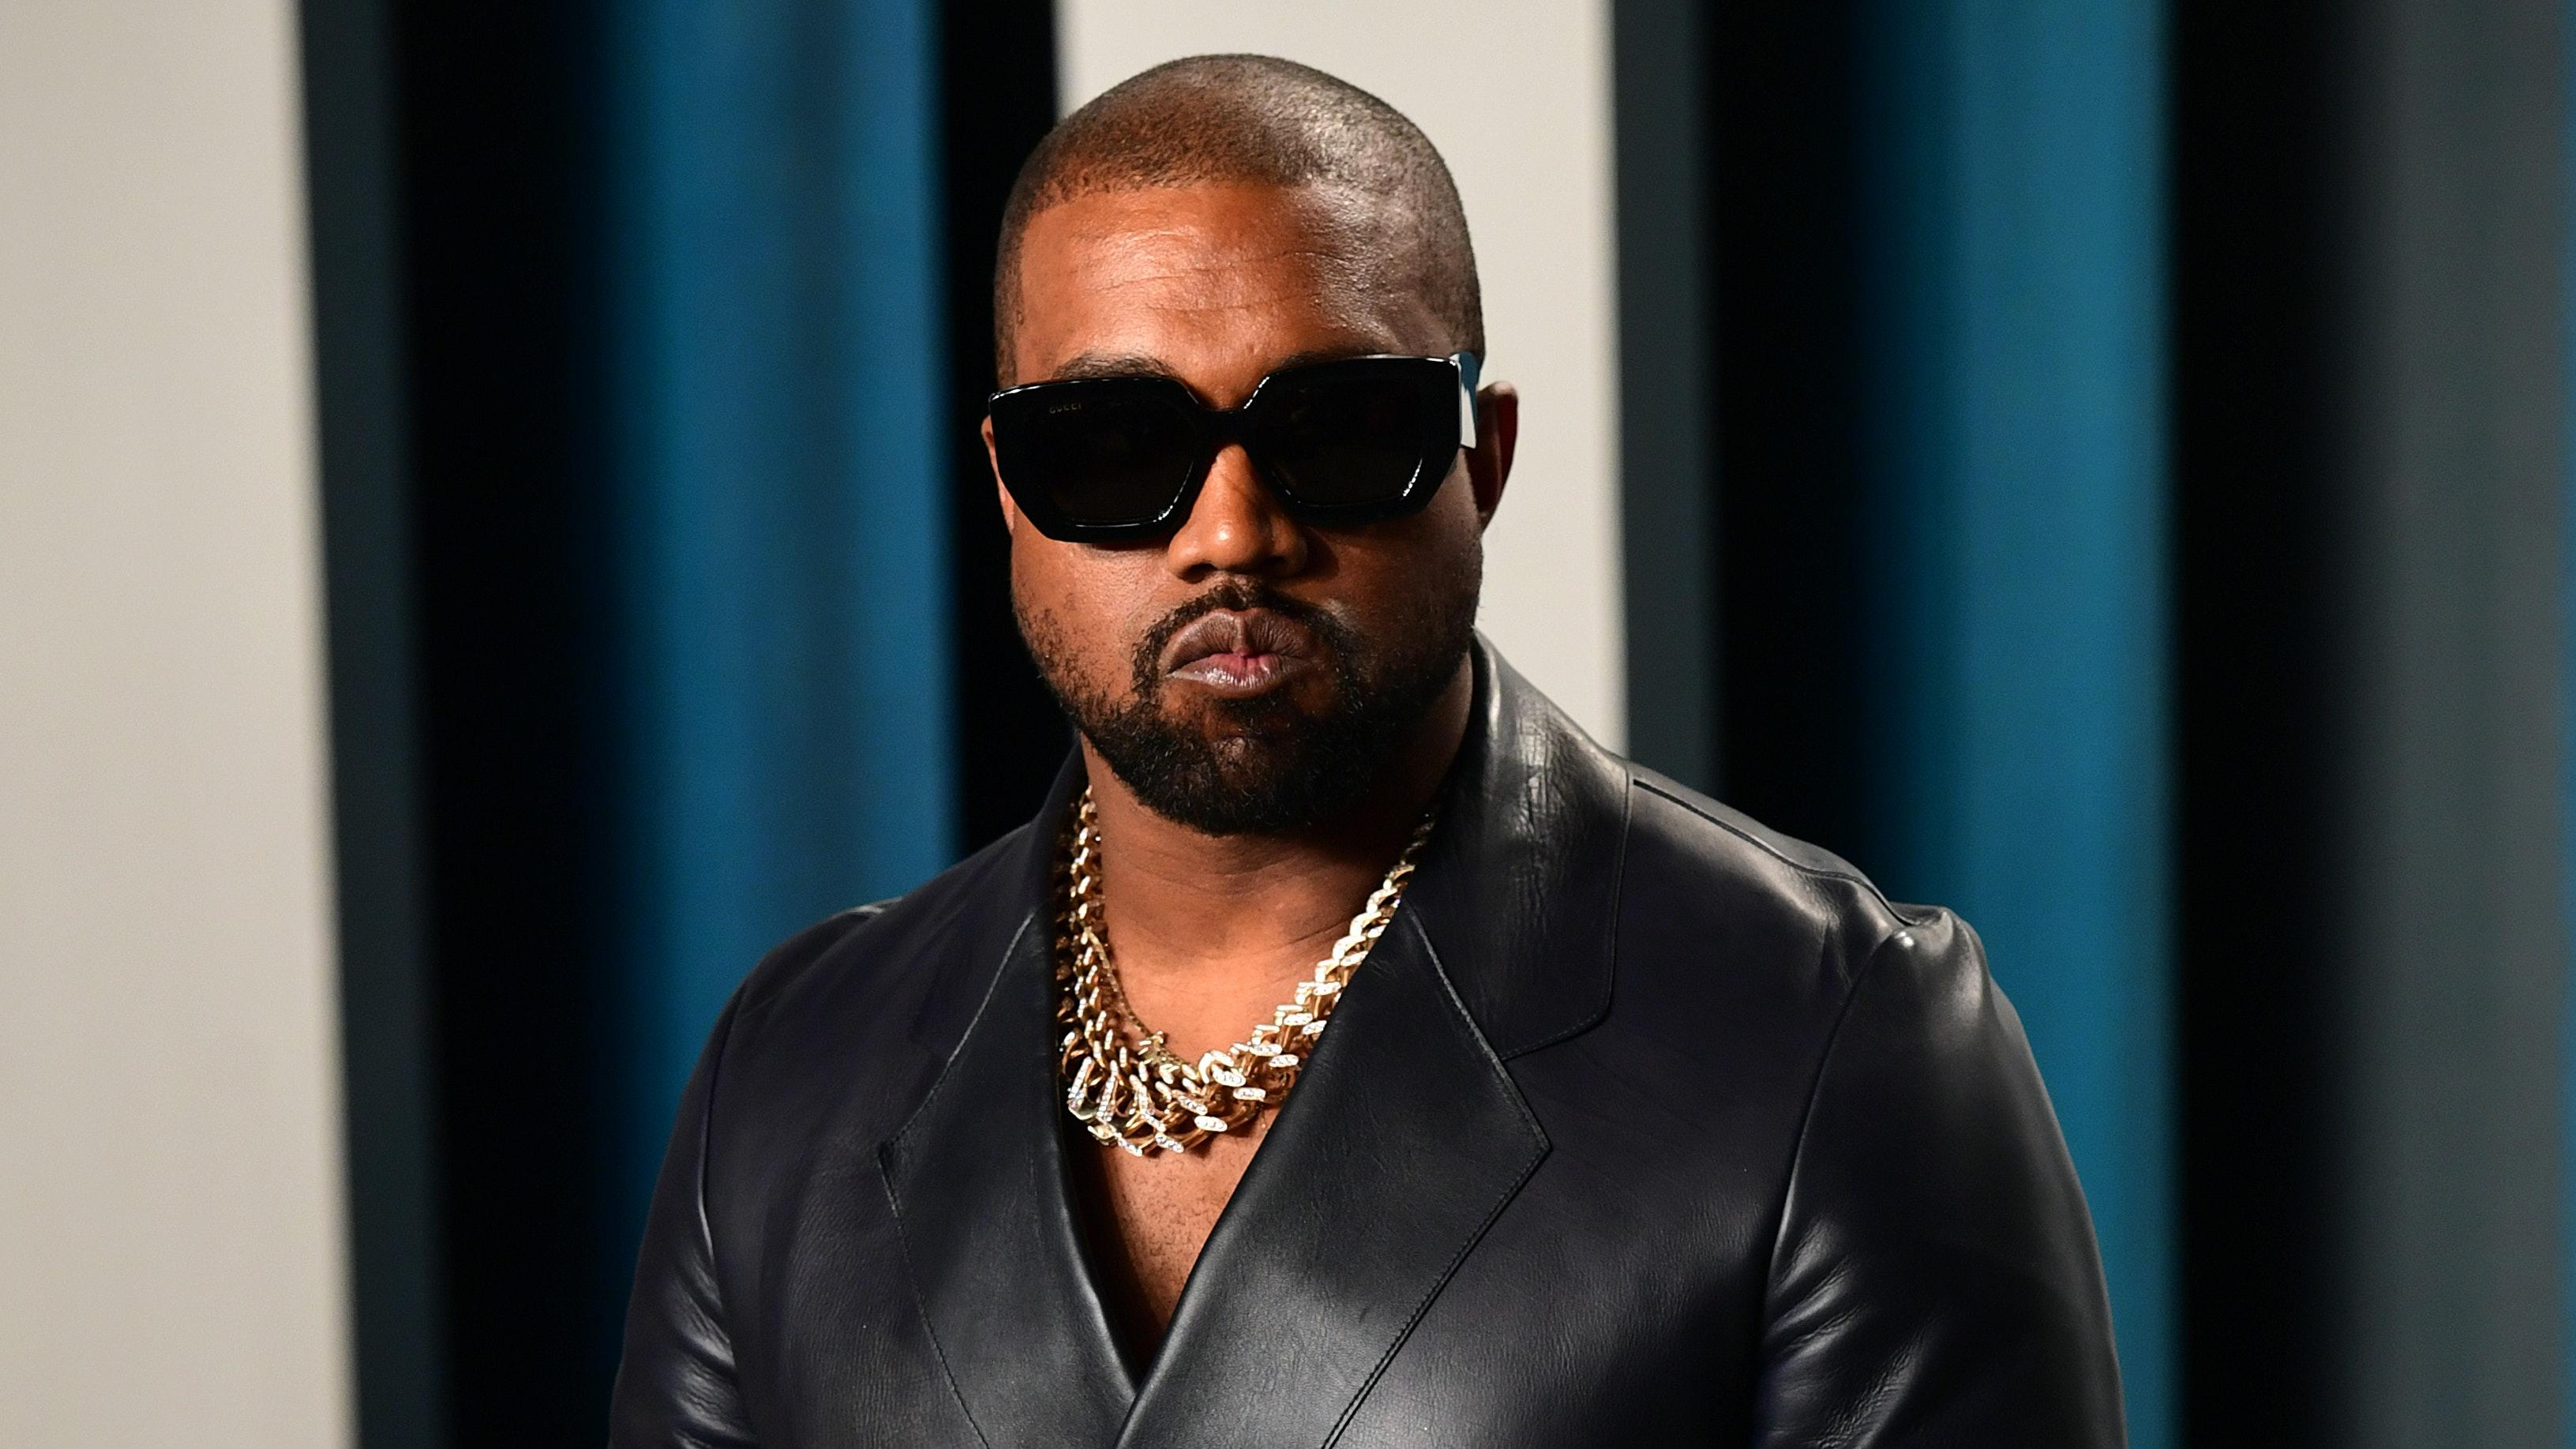 Kanye West appears to concede in presidential bid but launches Kanye 2024